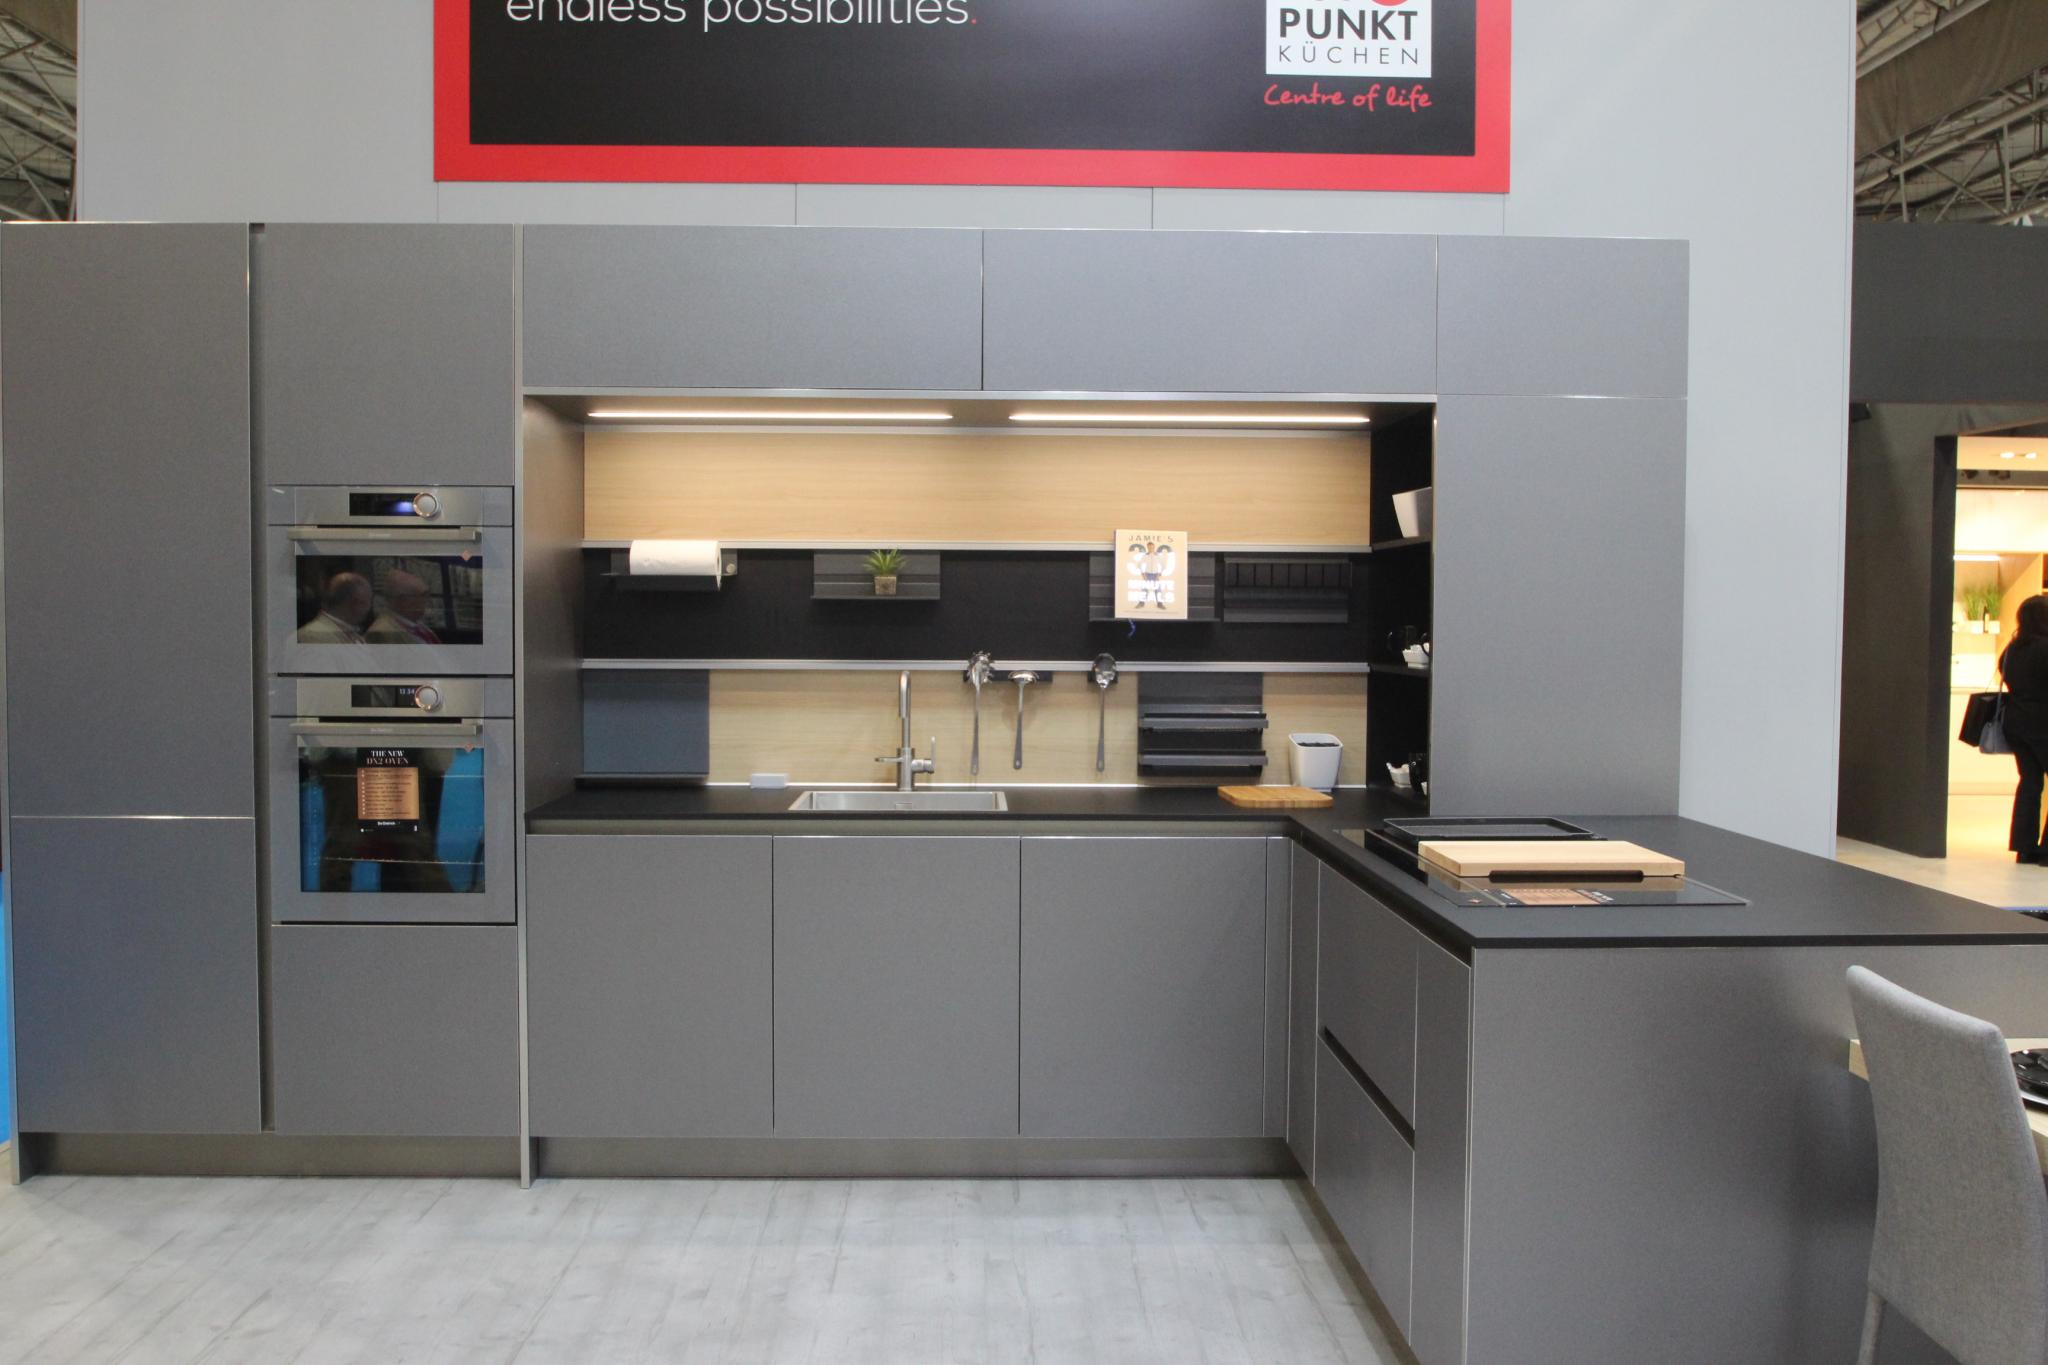 83 Off Rrp 35 000 Rotpunkt Metal Line Pre Installed Kitchen Units Schwarz Xtreme Laminate Worktops